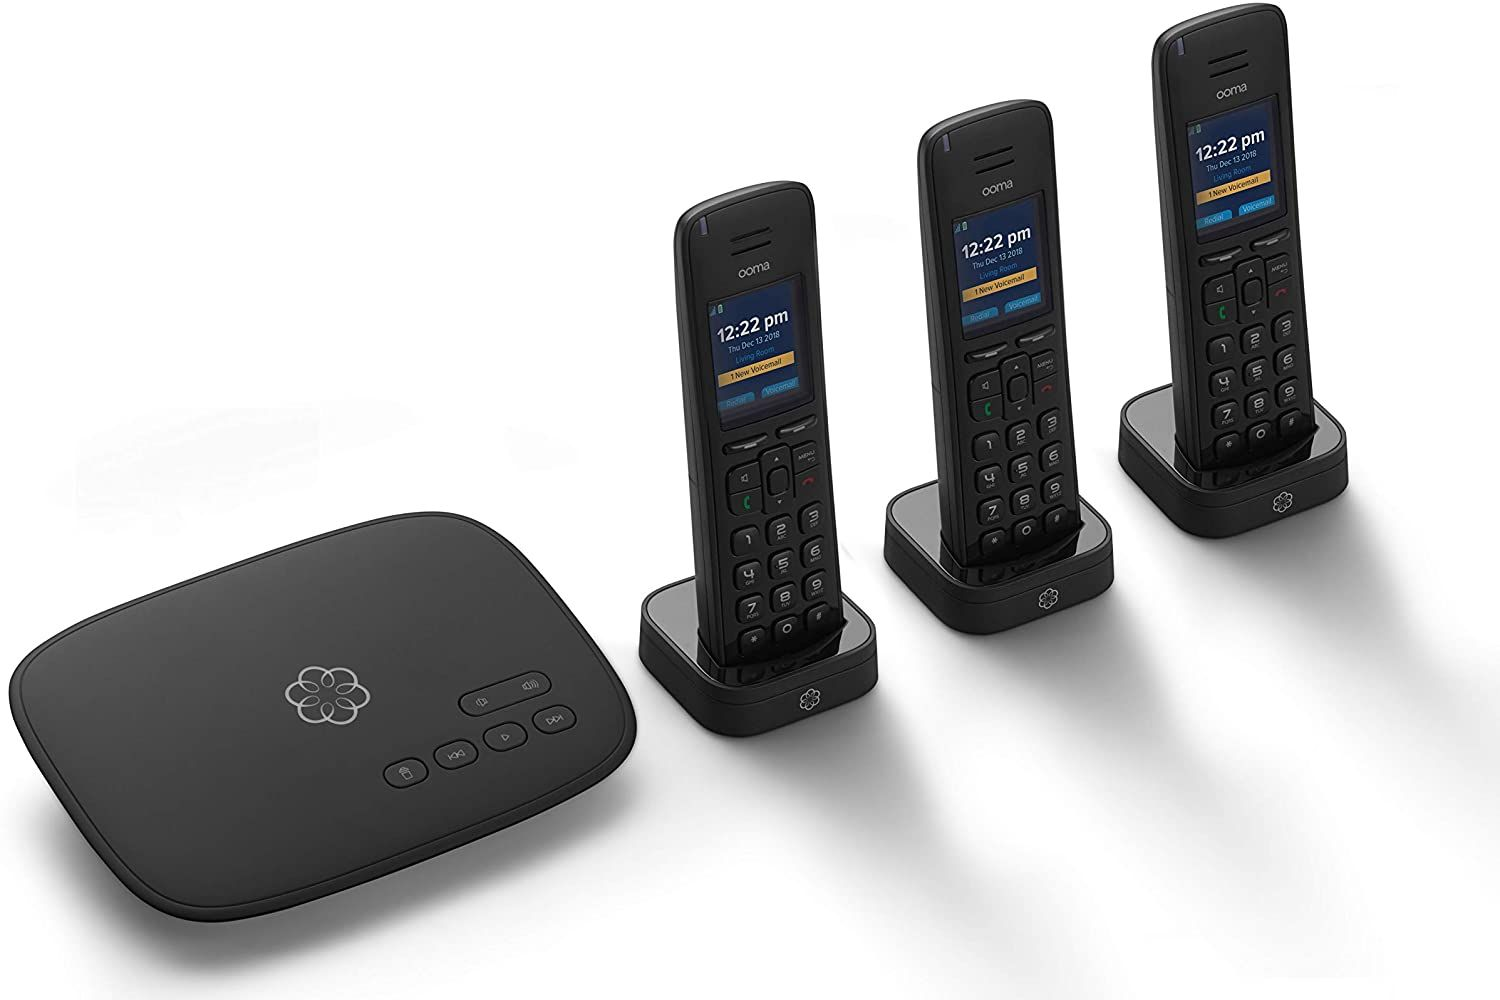 Ooma Telo Voip Free Internet Home Phone Service With 3 Hd3 Handsets Affordable Landline Replacement Unlimited Nationwide Calling In 2020 Voip Phone Service Handset